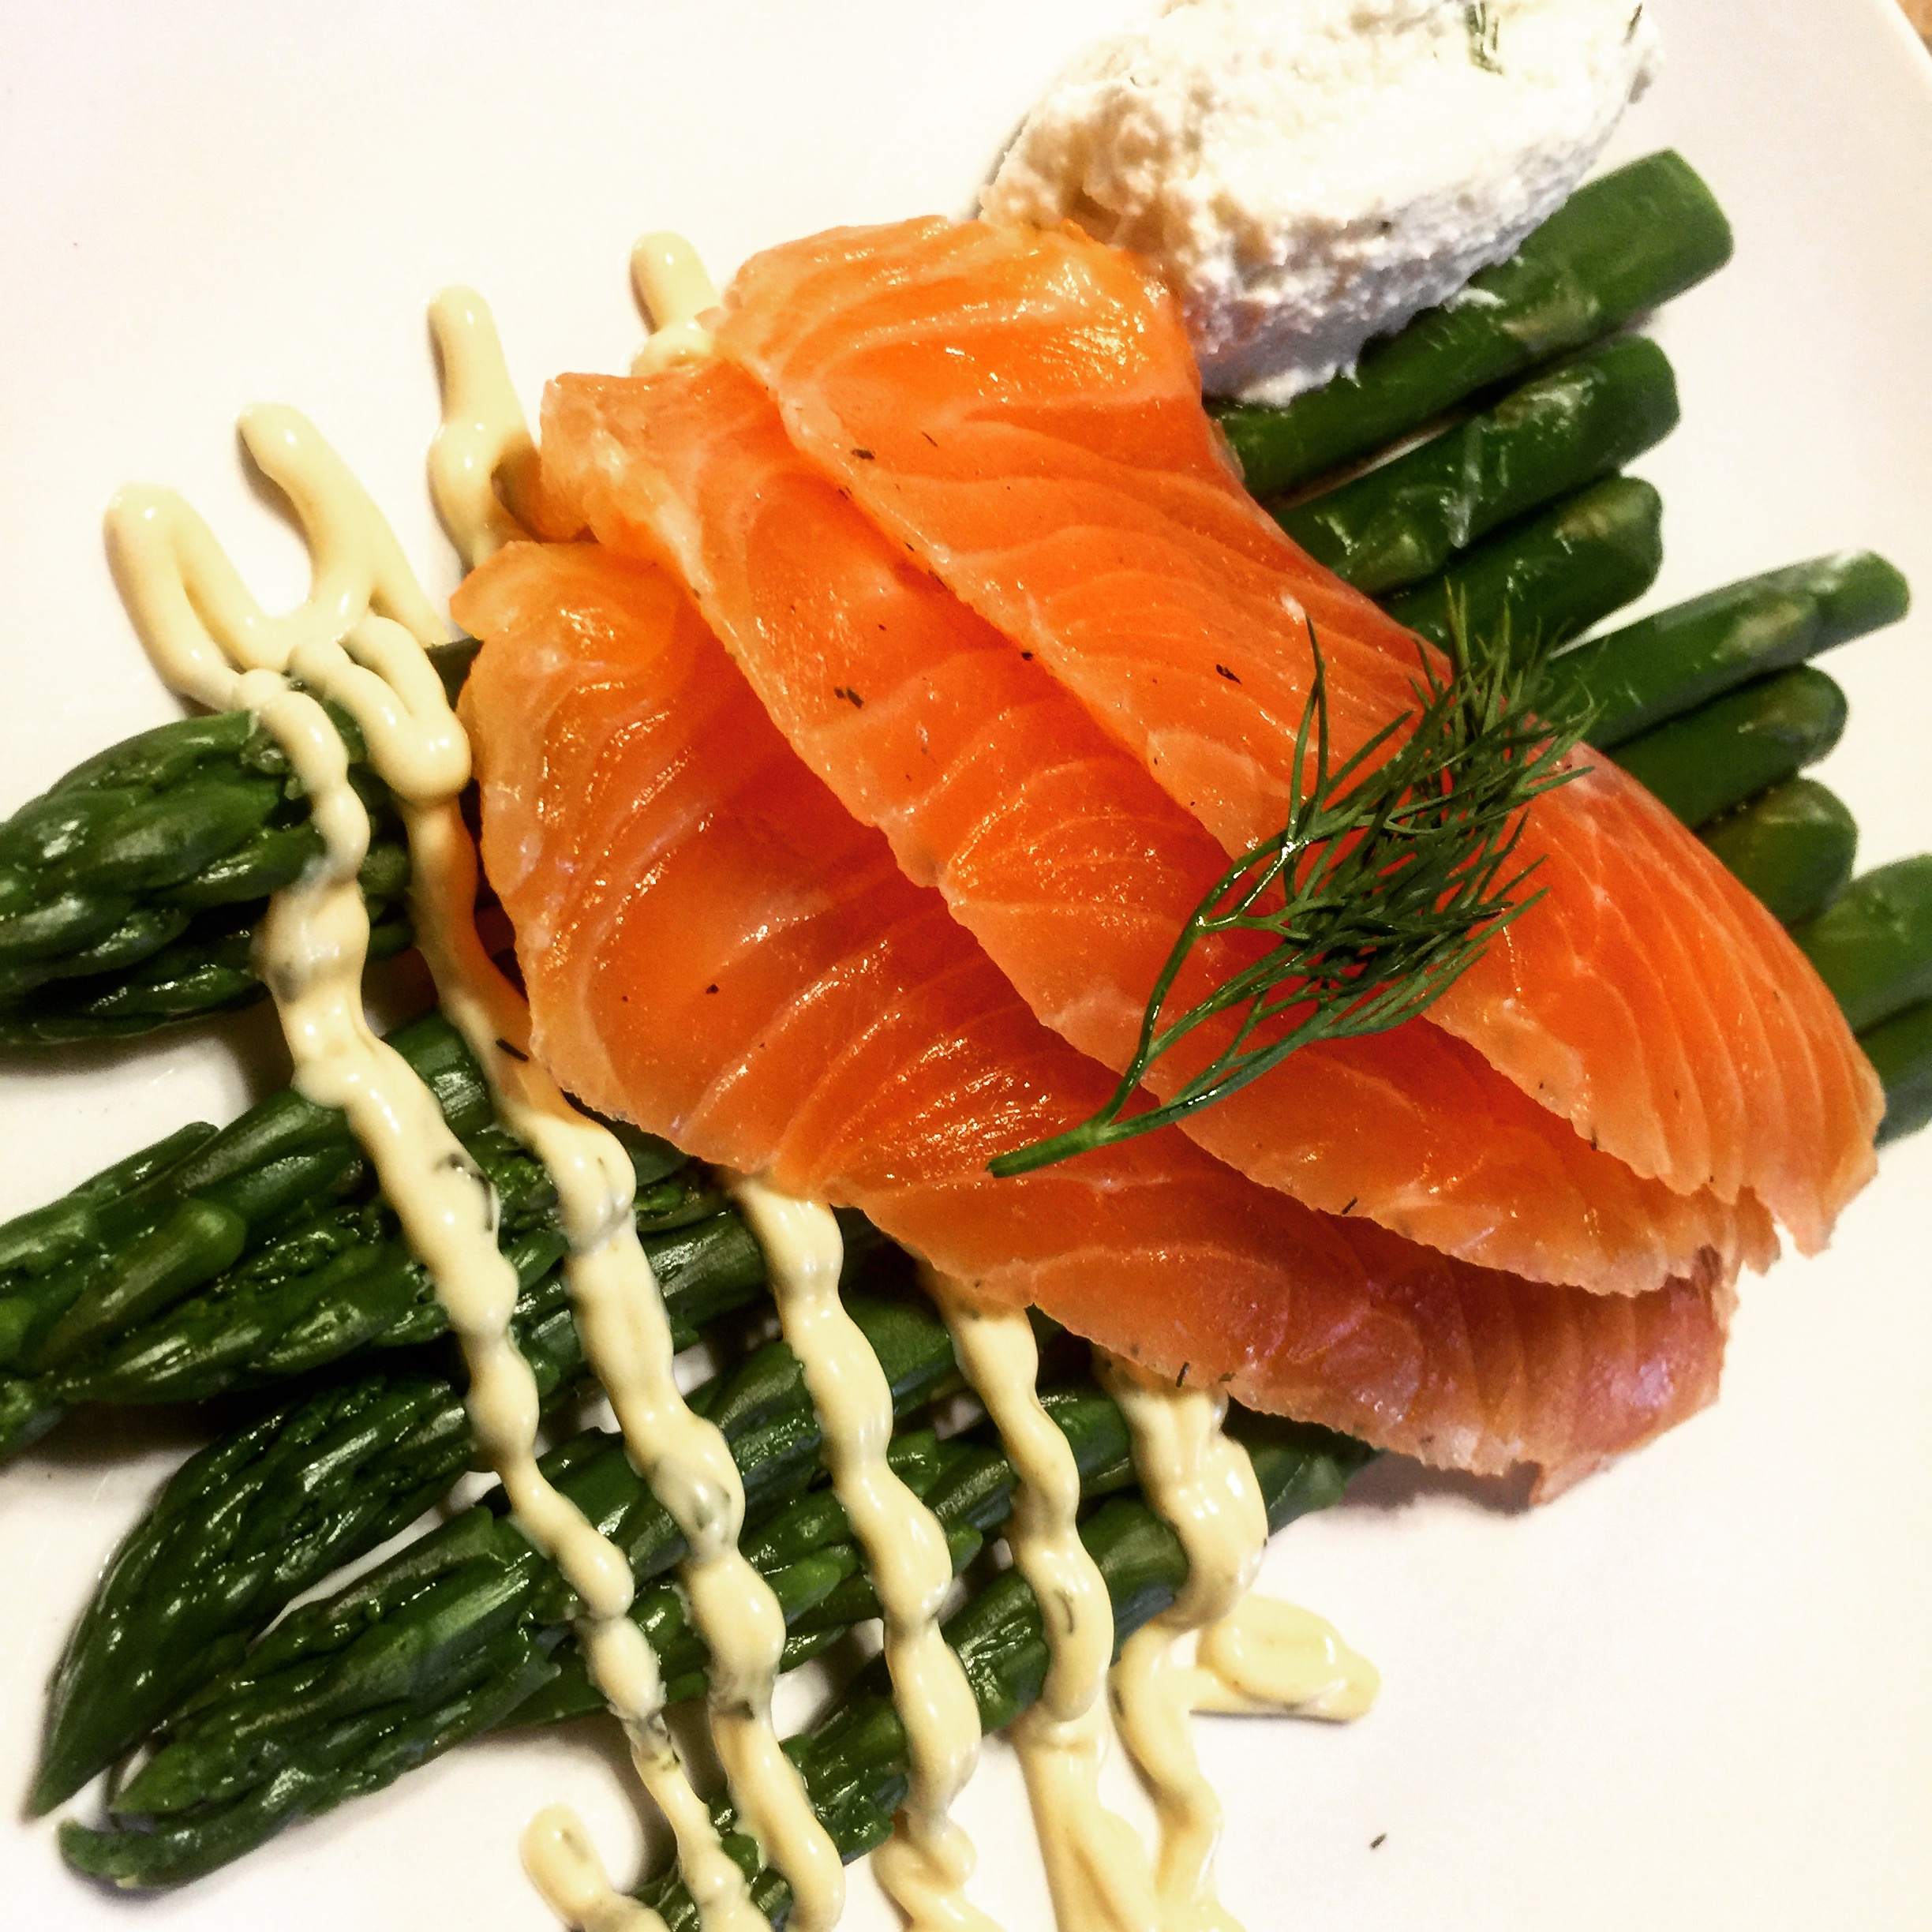 Cured salmon gravlax with honeyed ricotta and asparagus